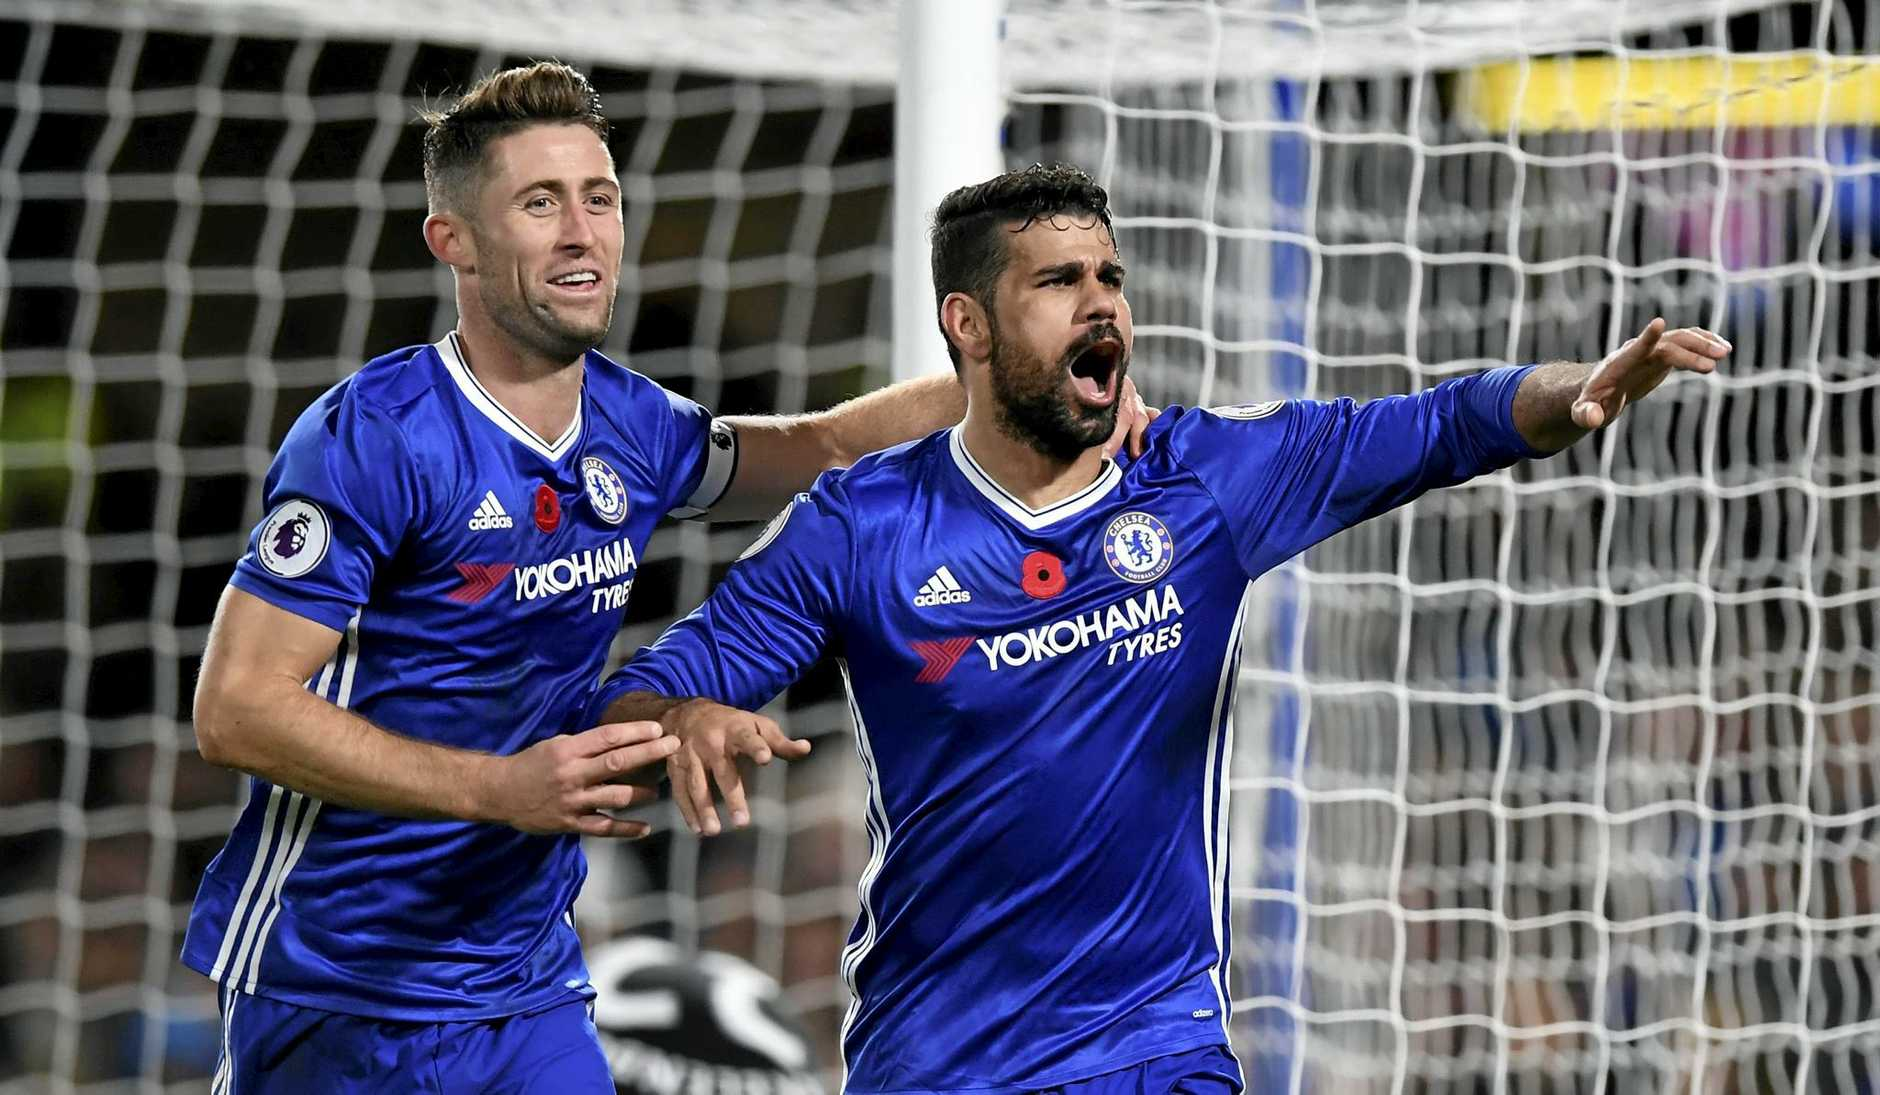 Chelsea's Diego Costa (right) is congratulated by teammate Gary Cahill after scoring against Everton.